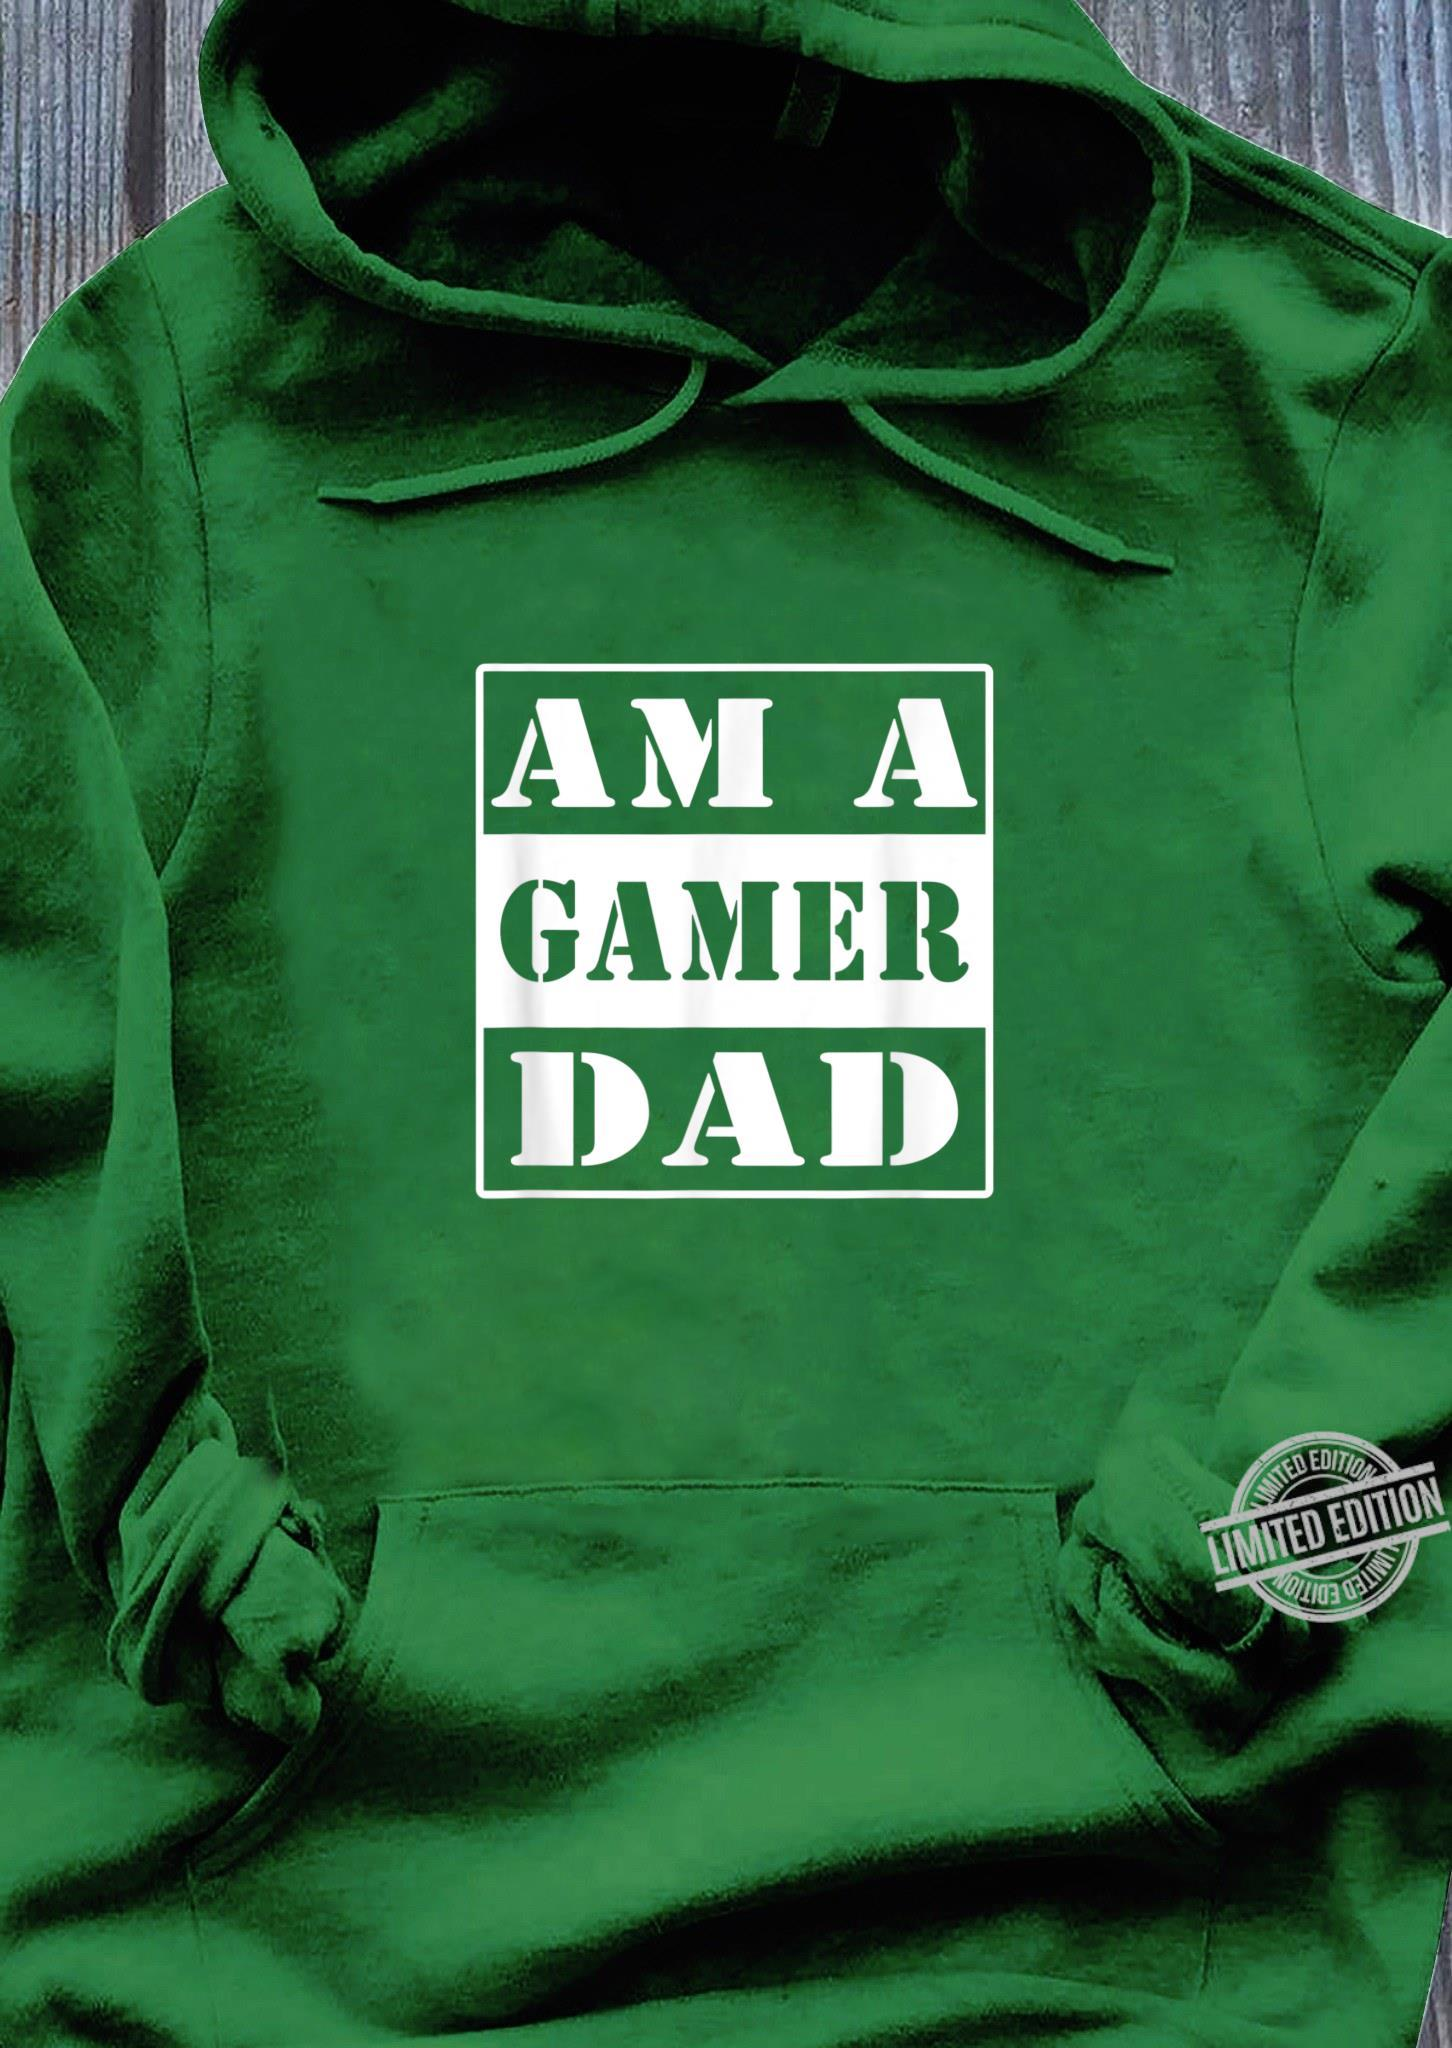 Am a gamer dad for gaming fathers Shirt hoodie